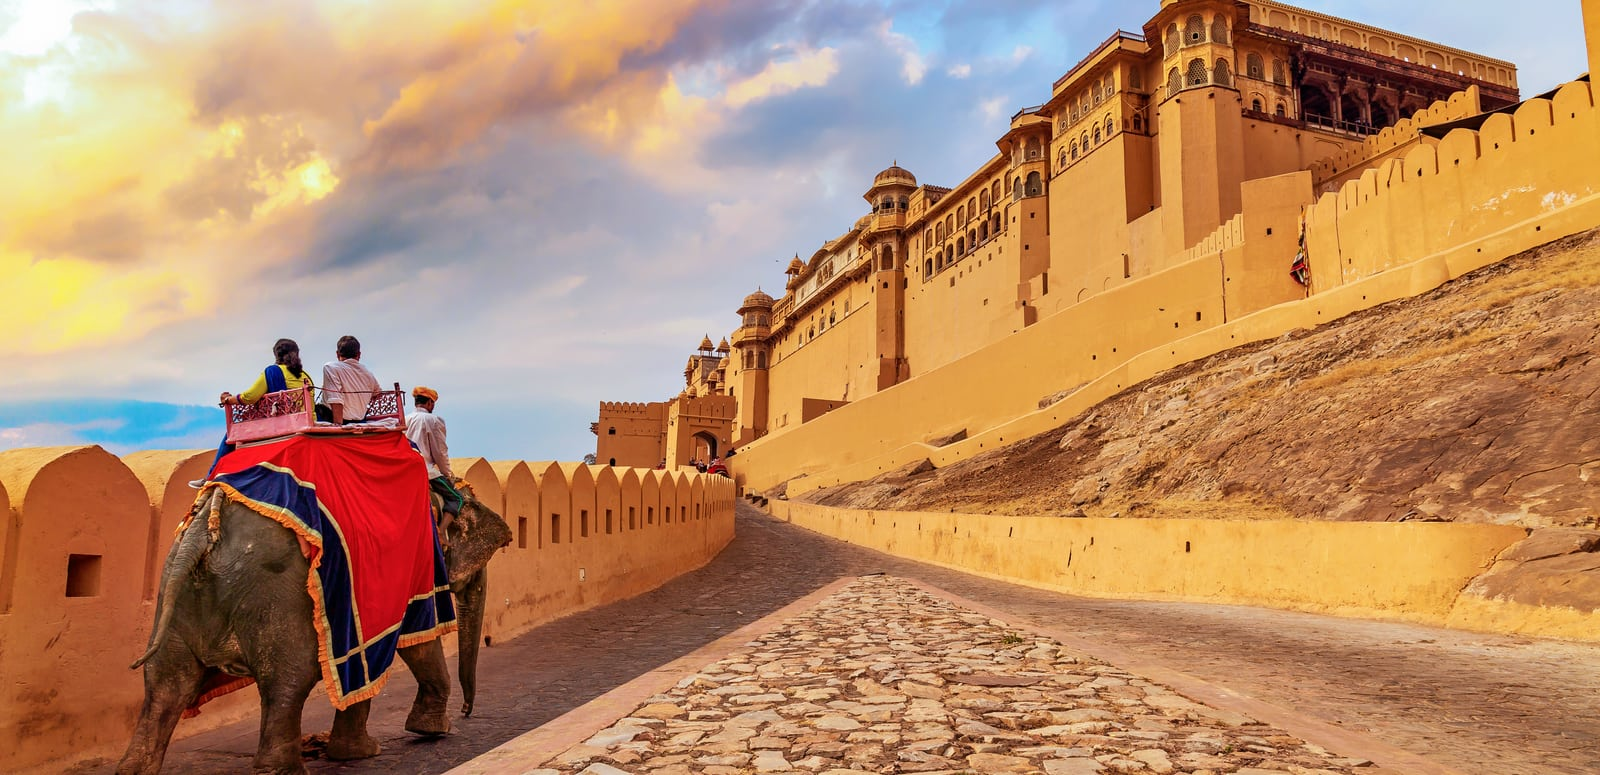 Jaipur – The city that makes golden triangle tour magnificent